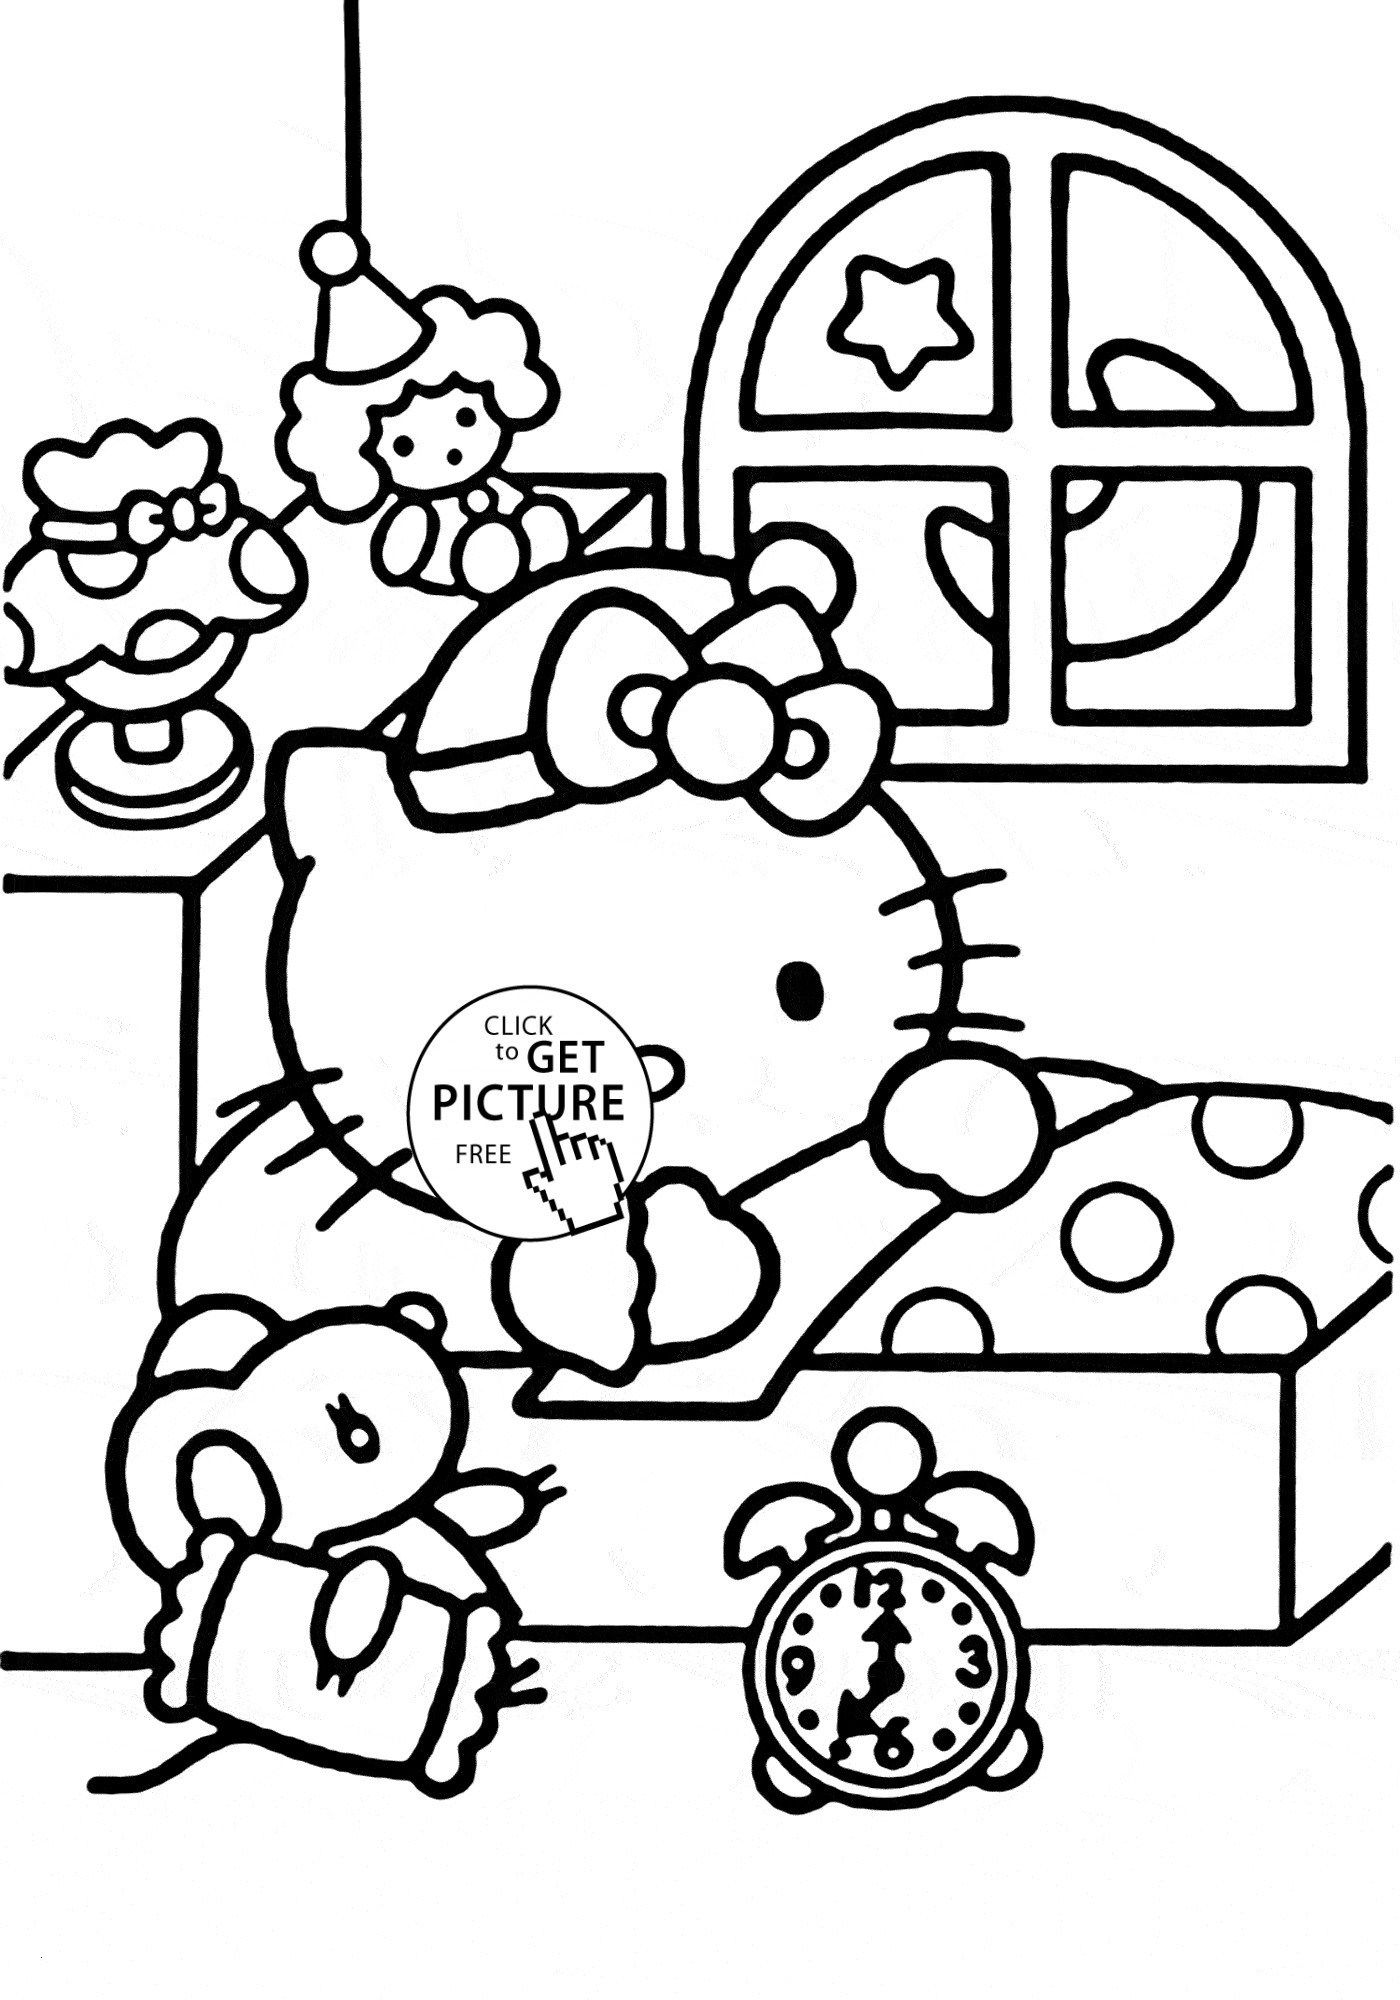 30 Hello Kitty Free Printable Coloring Pages Collection Coloring